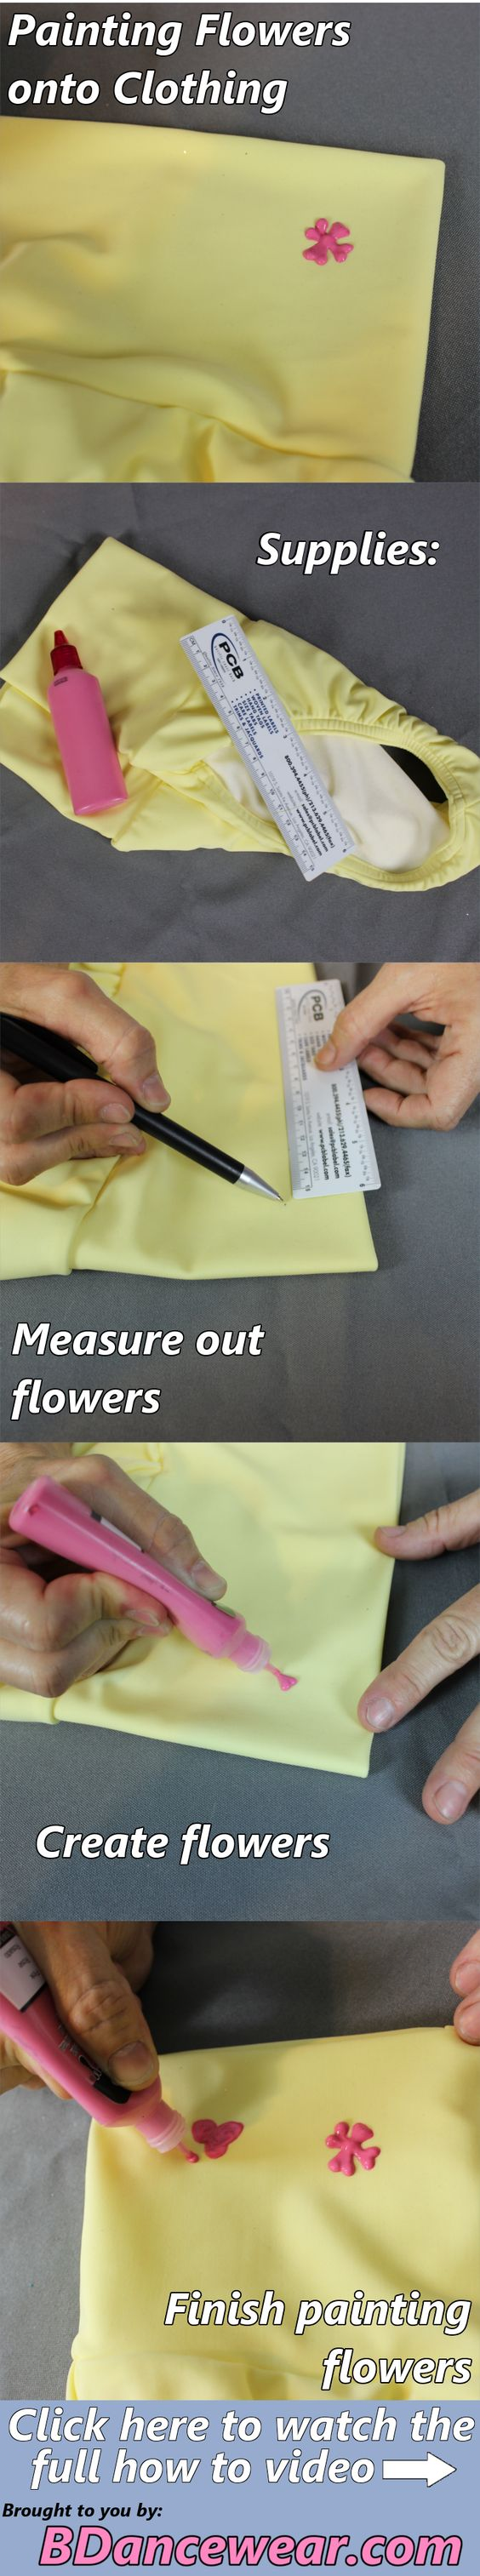 How to paint flowers on clothing for a dance costume.